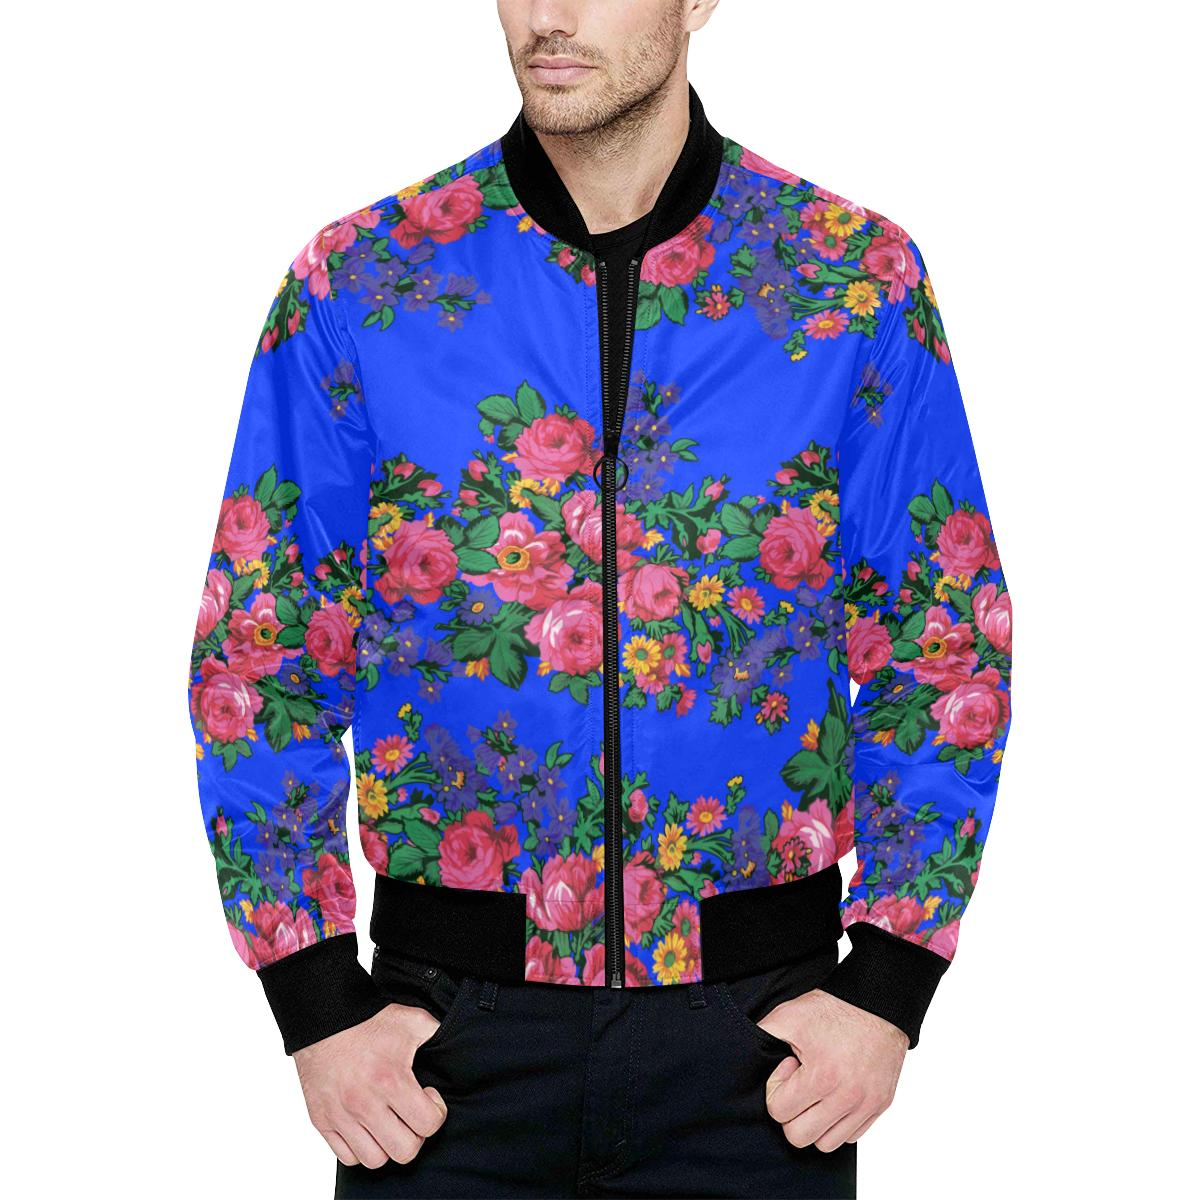 Kokum's Revenge- Royal Unisex Heavy Bomber Jacket with Quilted Lining All Over Print Quilted Jacket for Men (H33) e-joyer